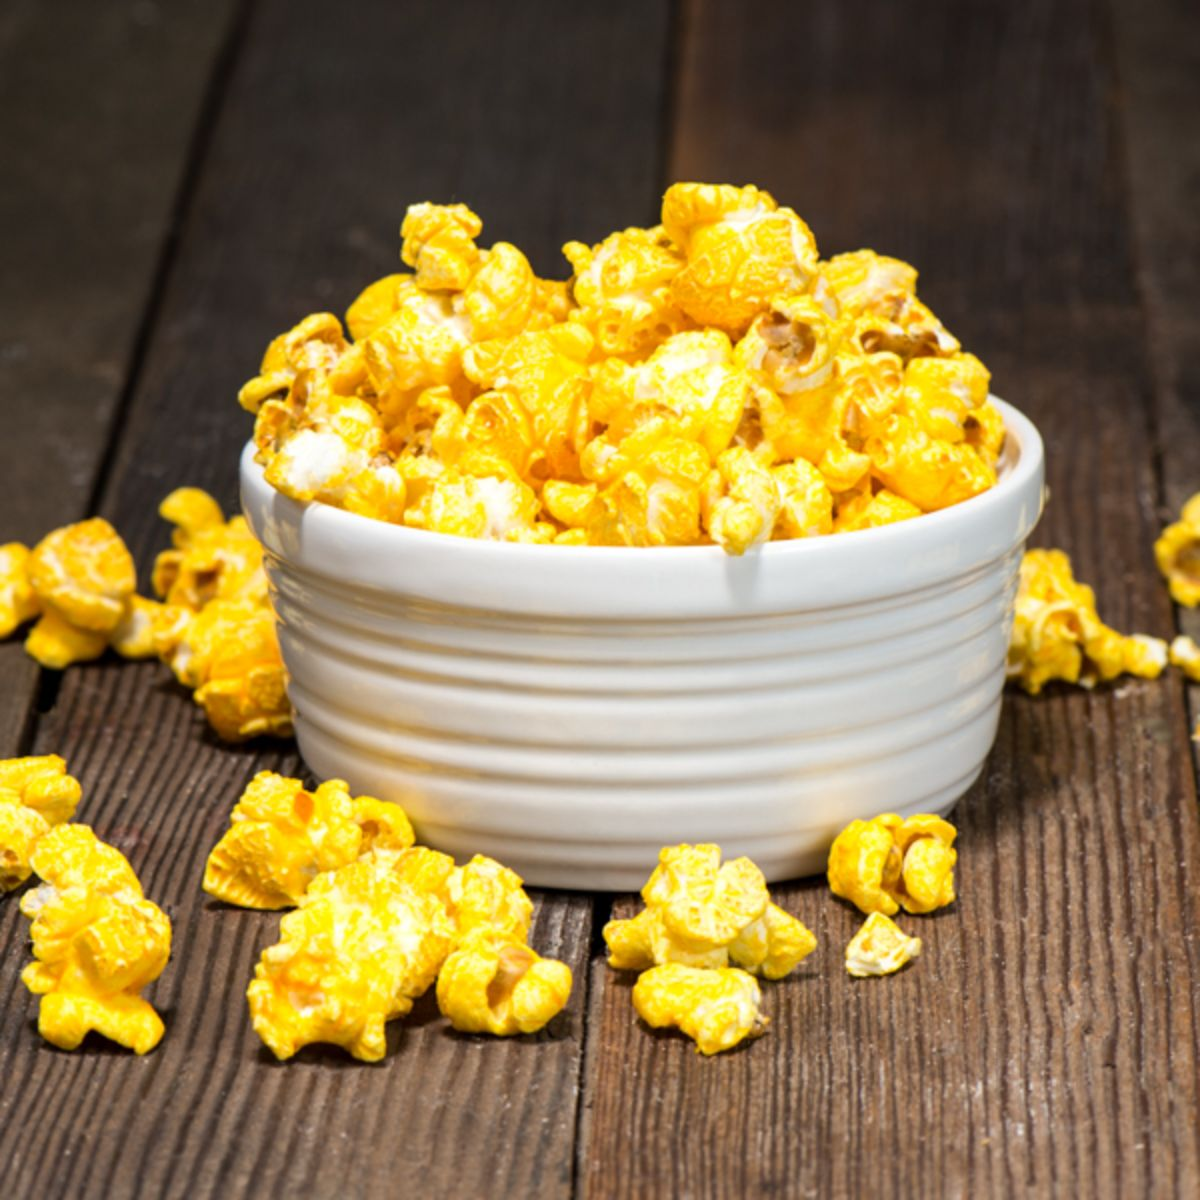 Pease's Cheddar Cheese Popcorn